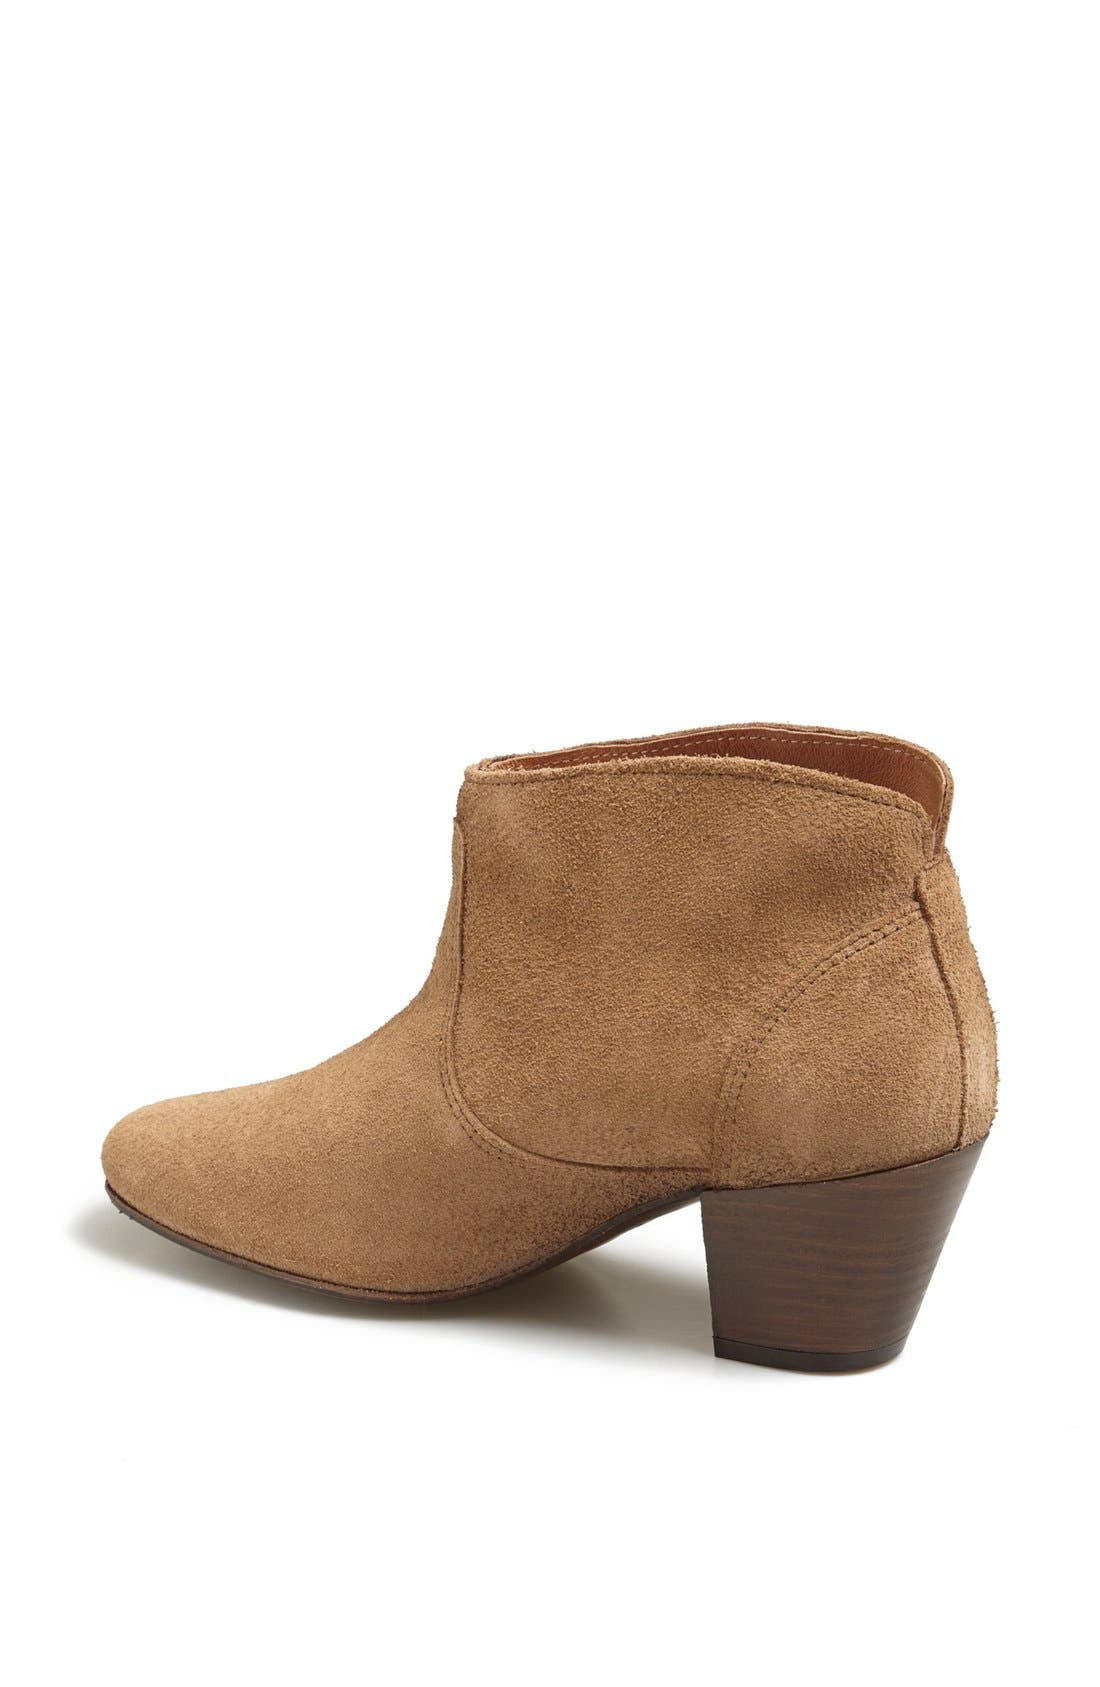 Alternate Image 2  - H by Hudson 'Mirar' Suede Bootie